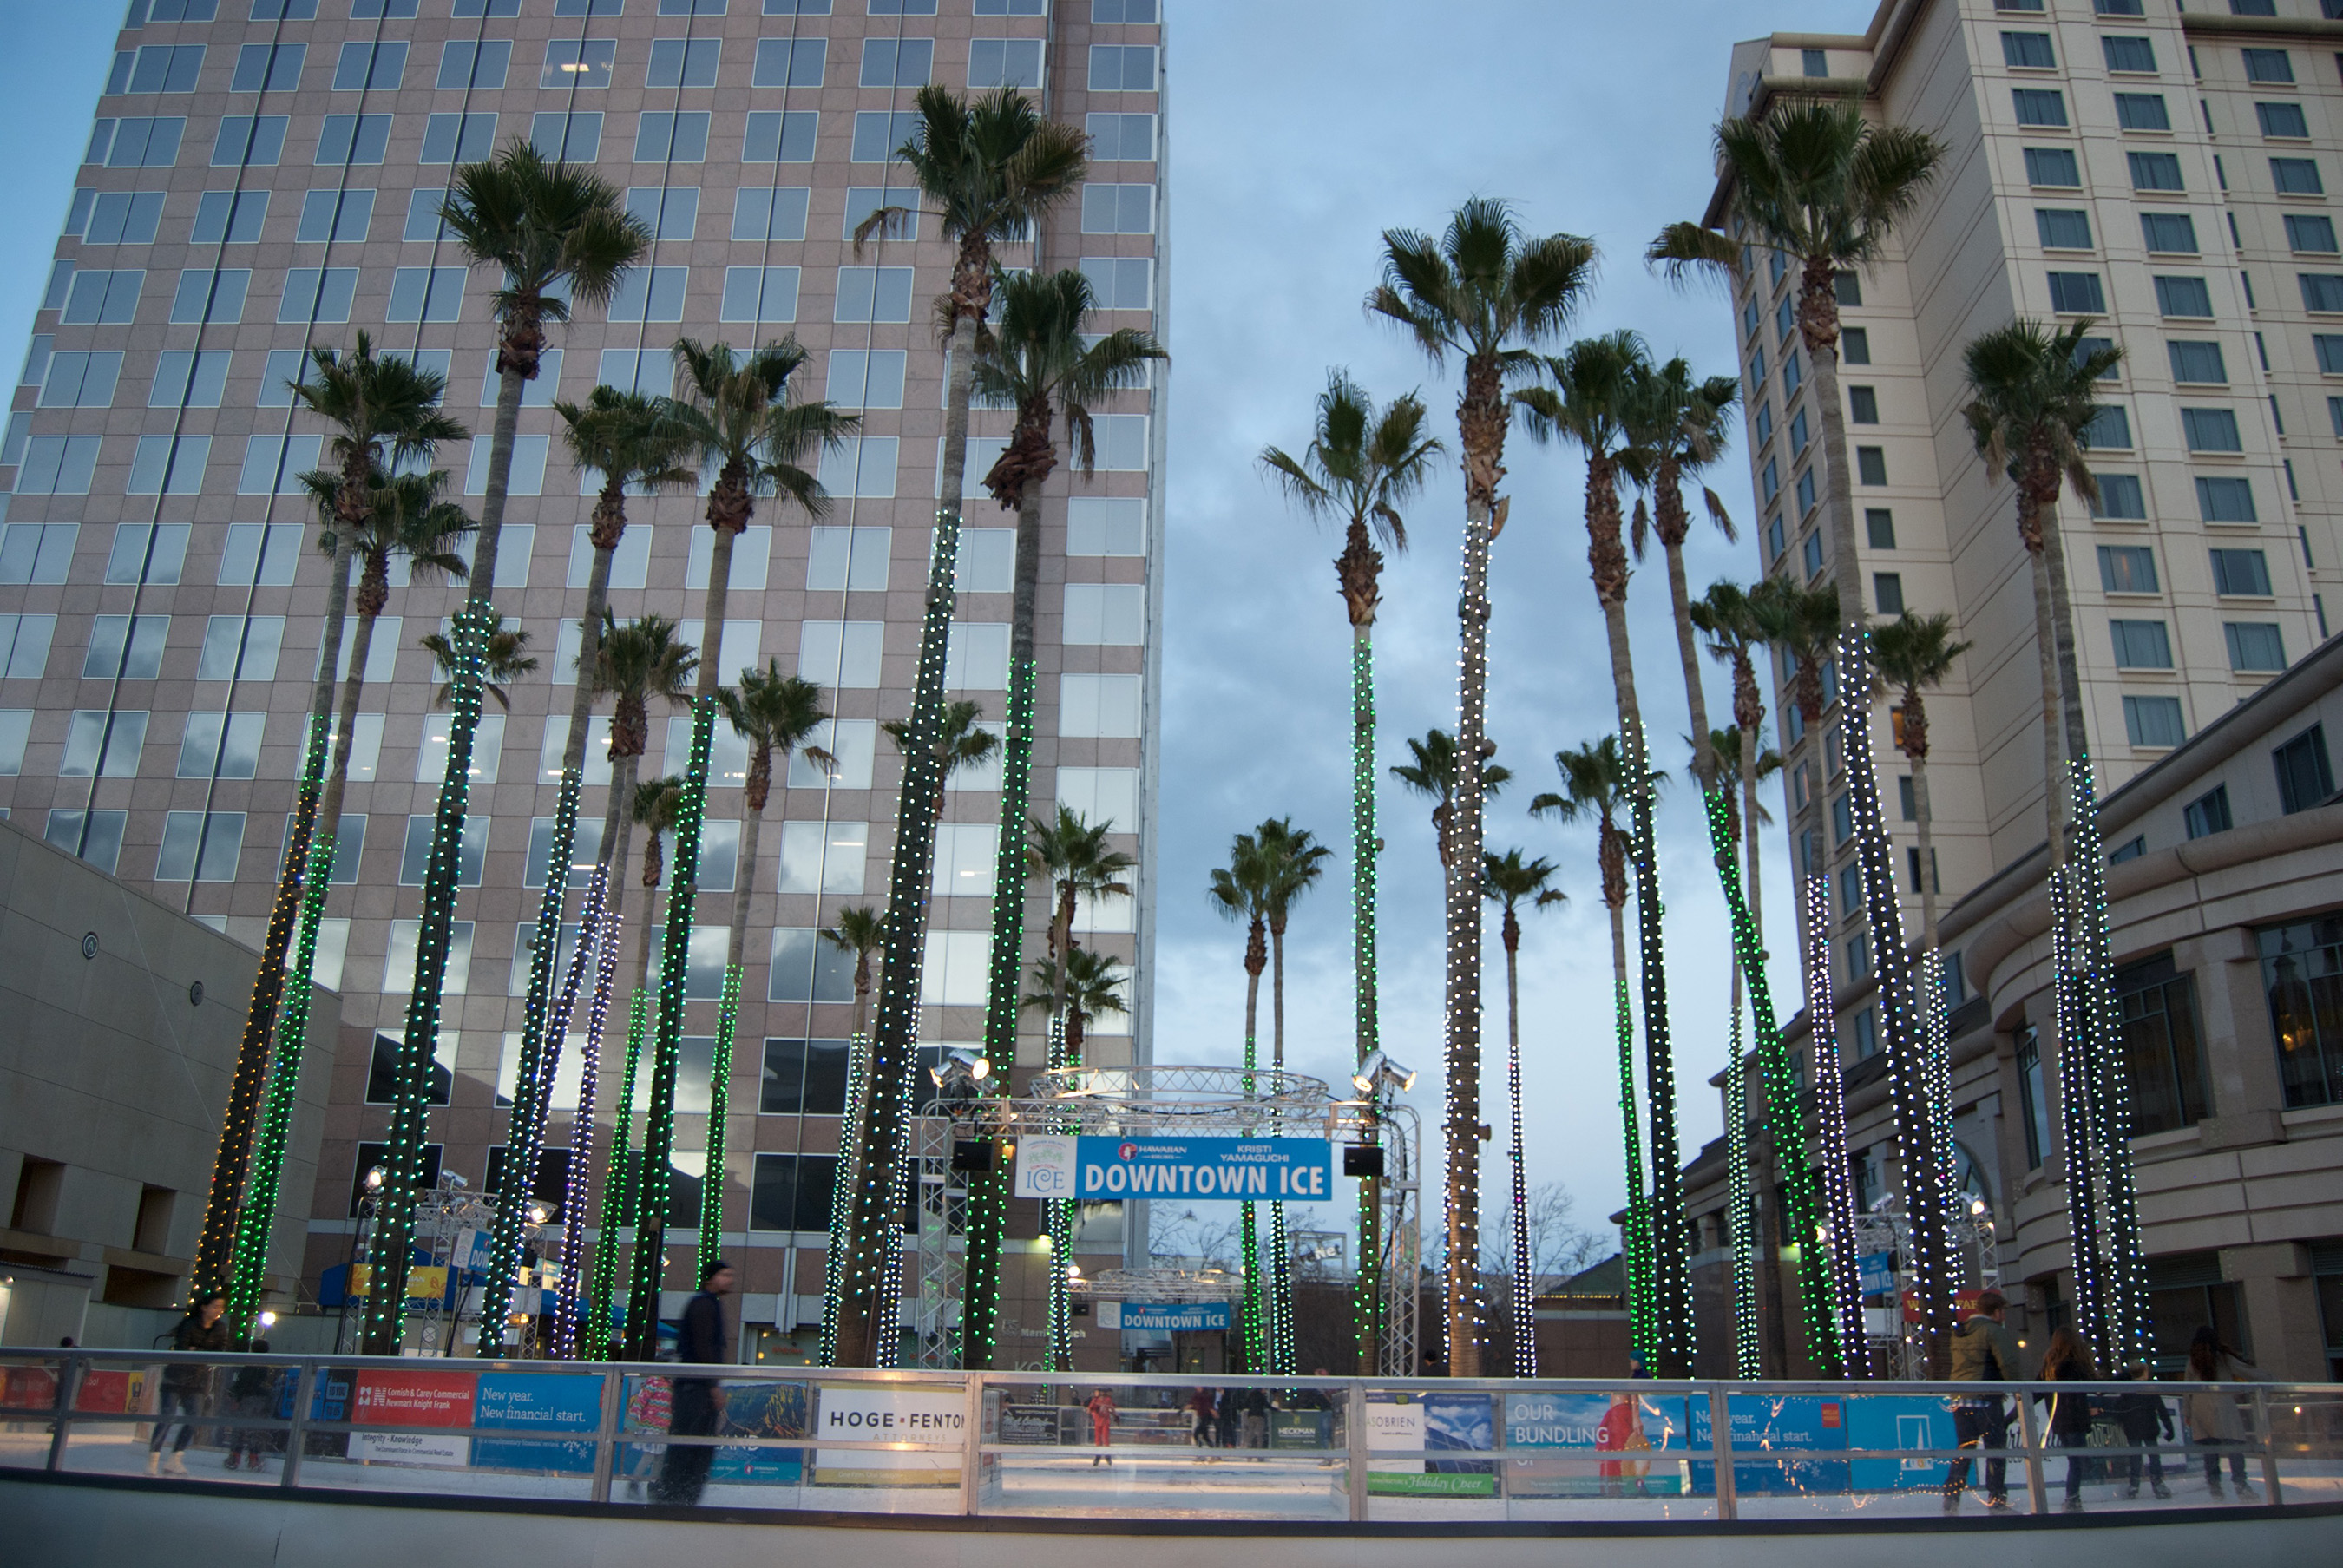 Visitors can enjoy ice skating under palm trees and dancing lights throughout Game Week.